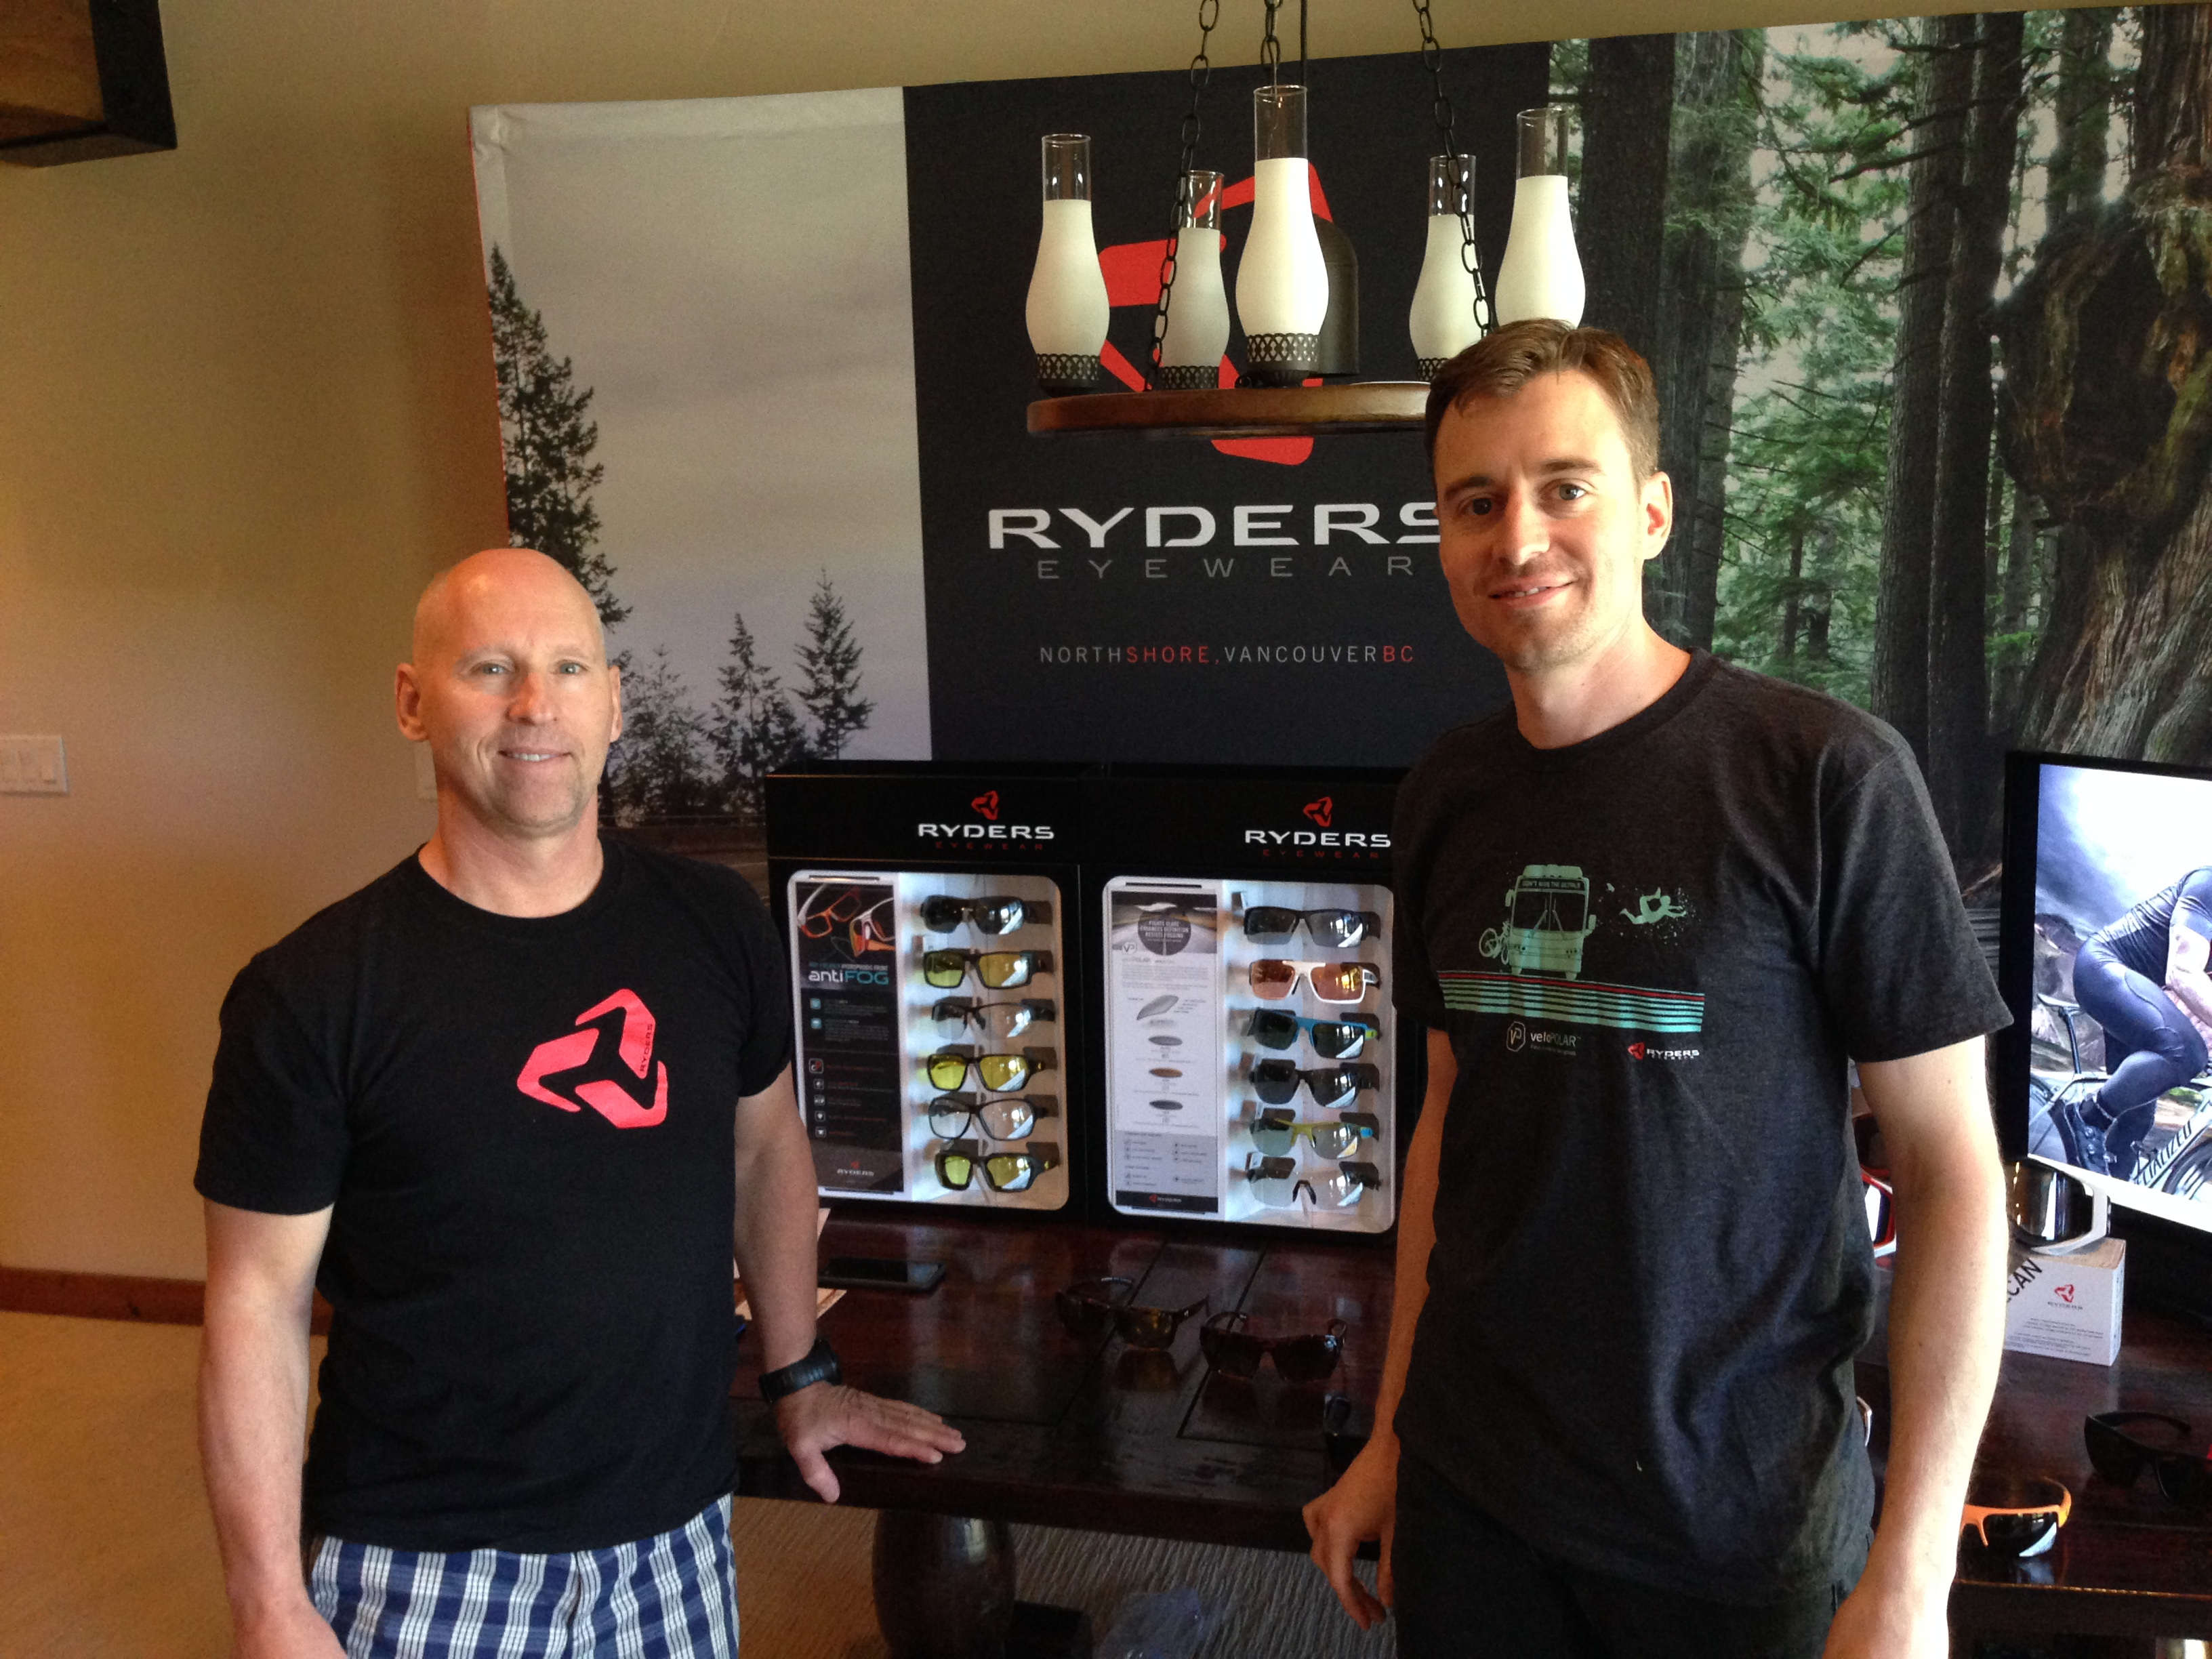 Dave Snow, left, and Michael Quinn at Ryders.